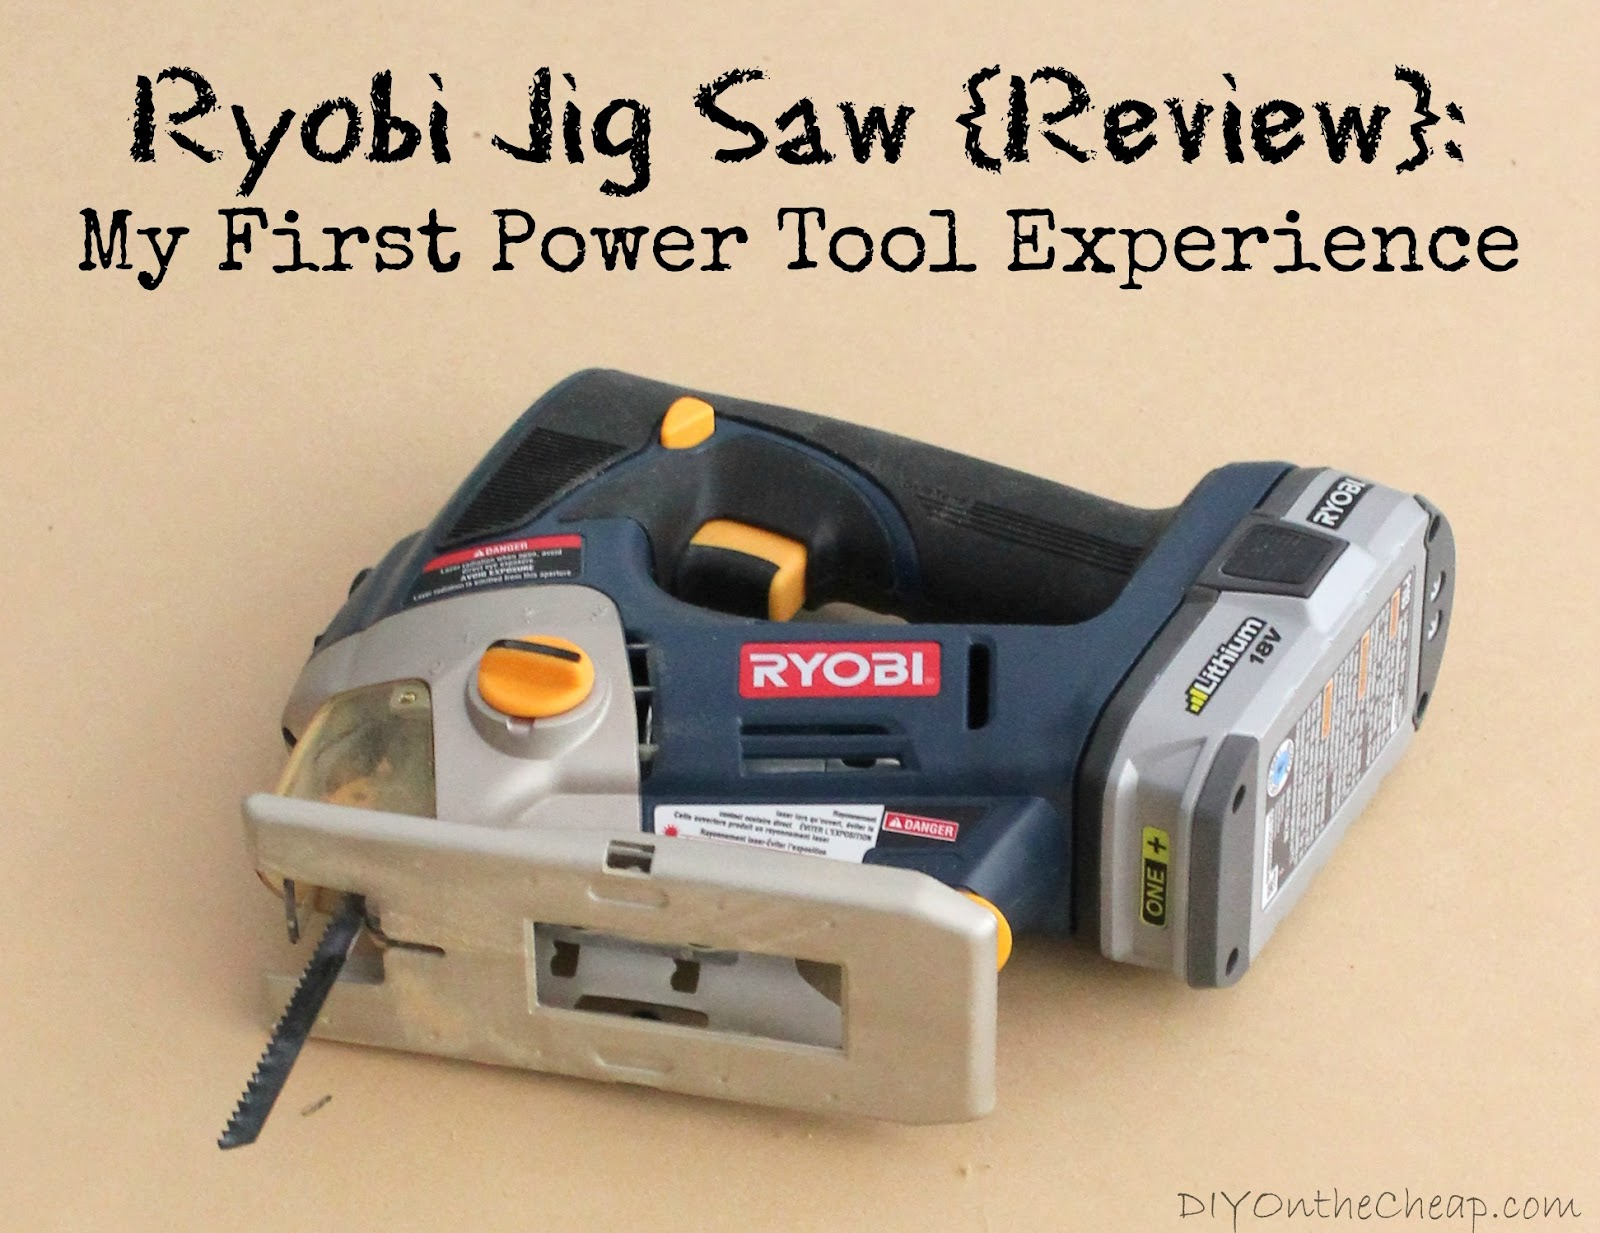 My first power tool experience ryobi jig saw review erin spain ryobi jig saw review keyboard keysfo Gallery